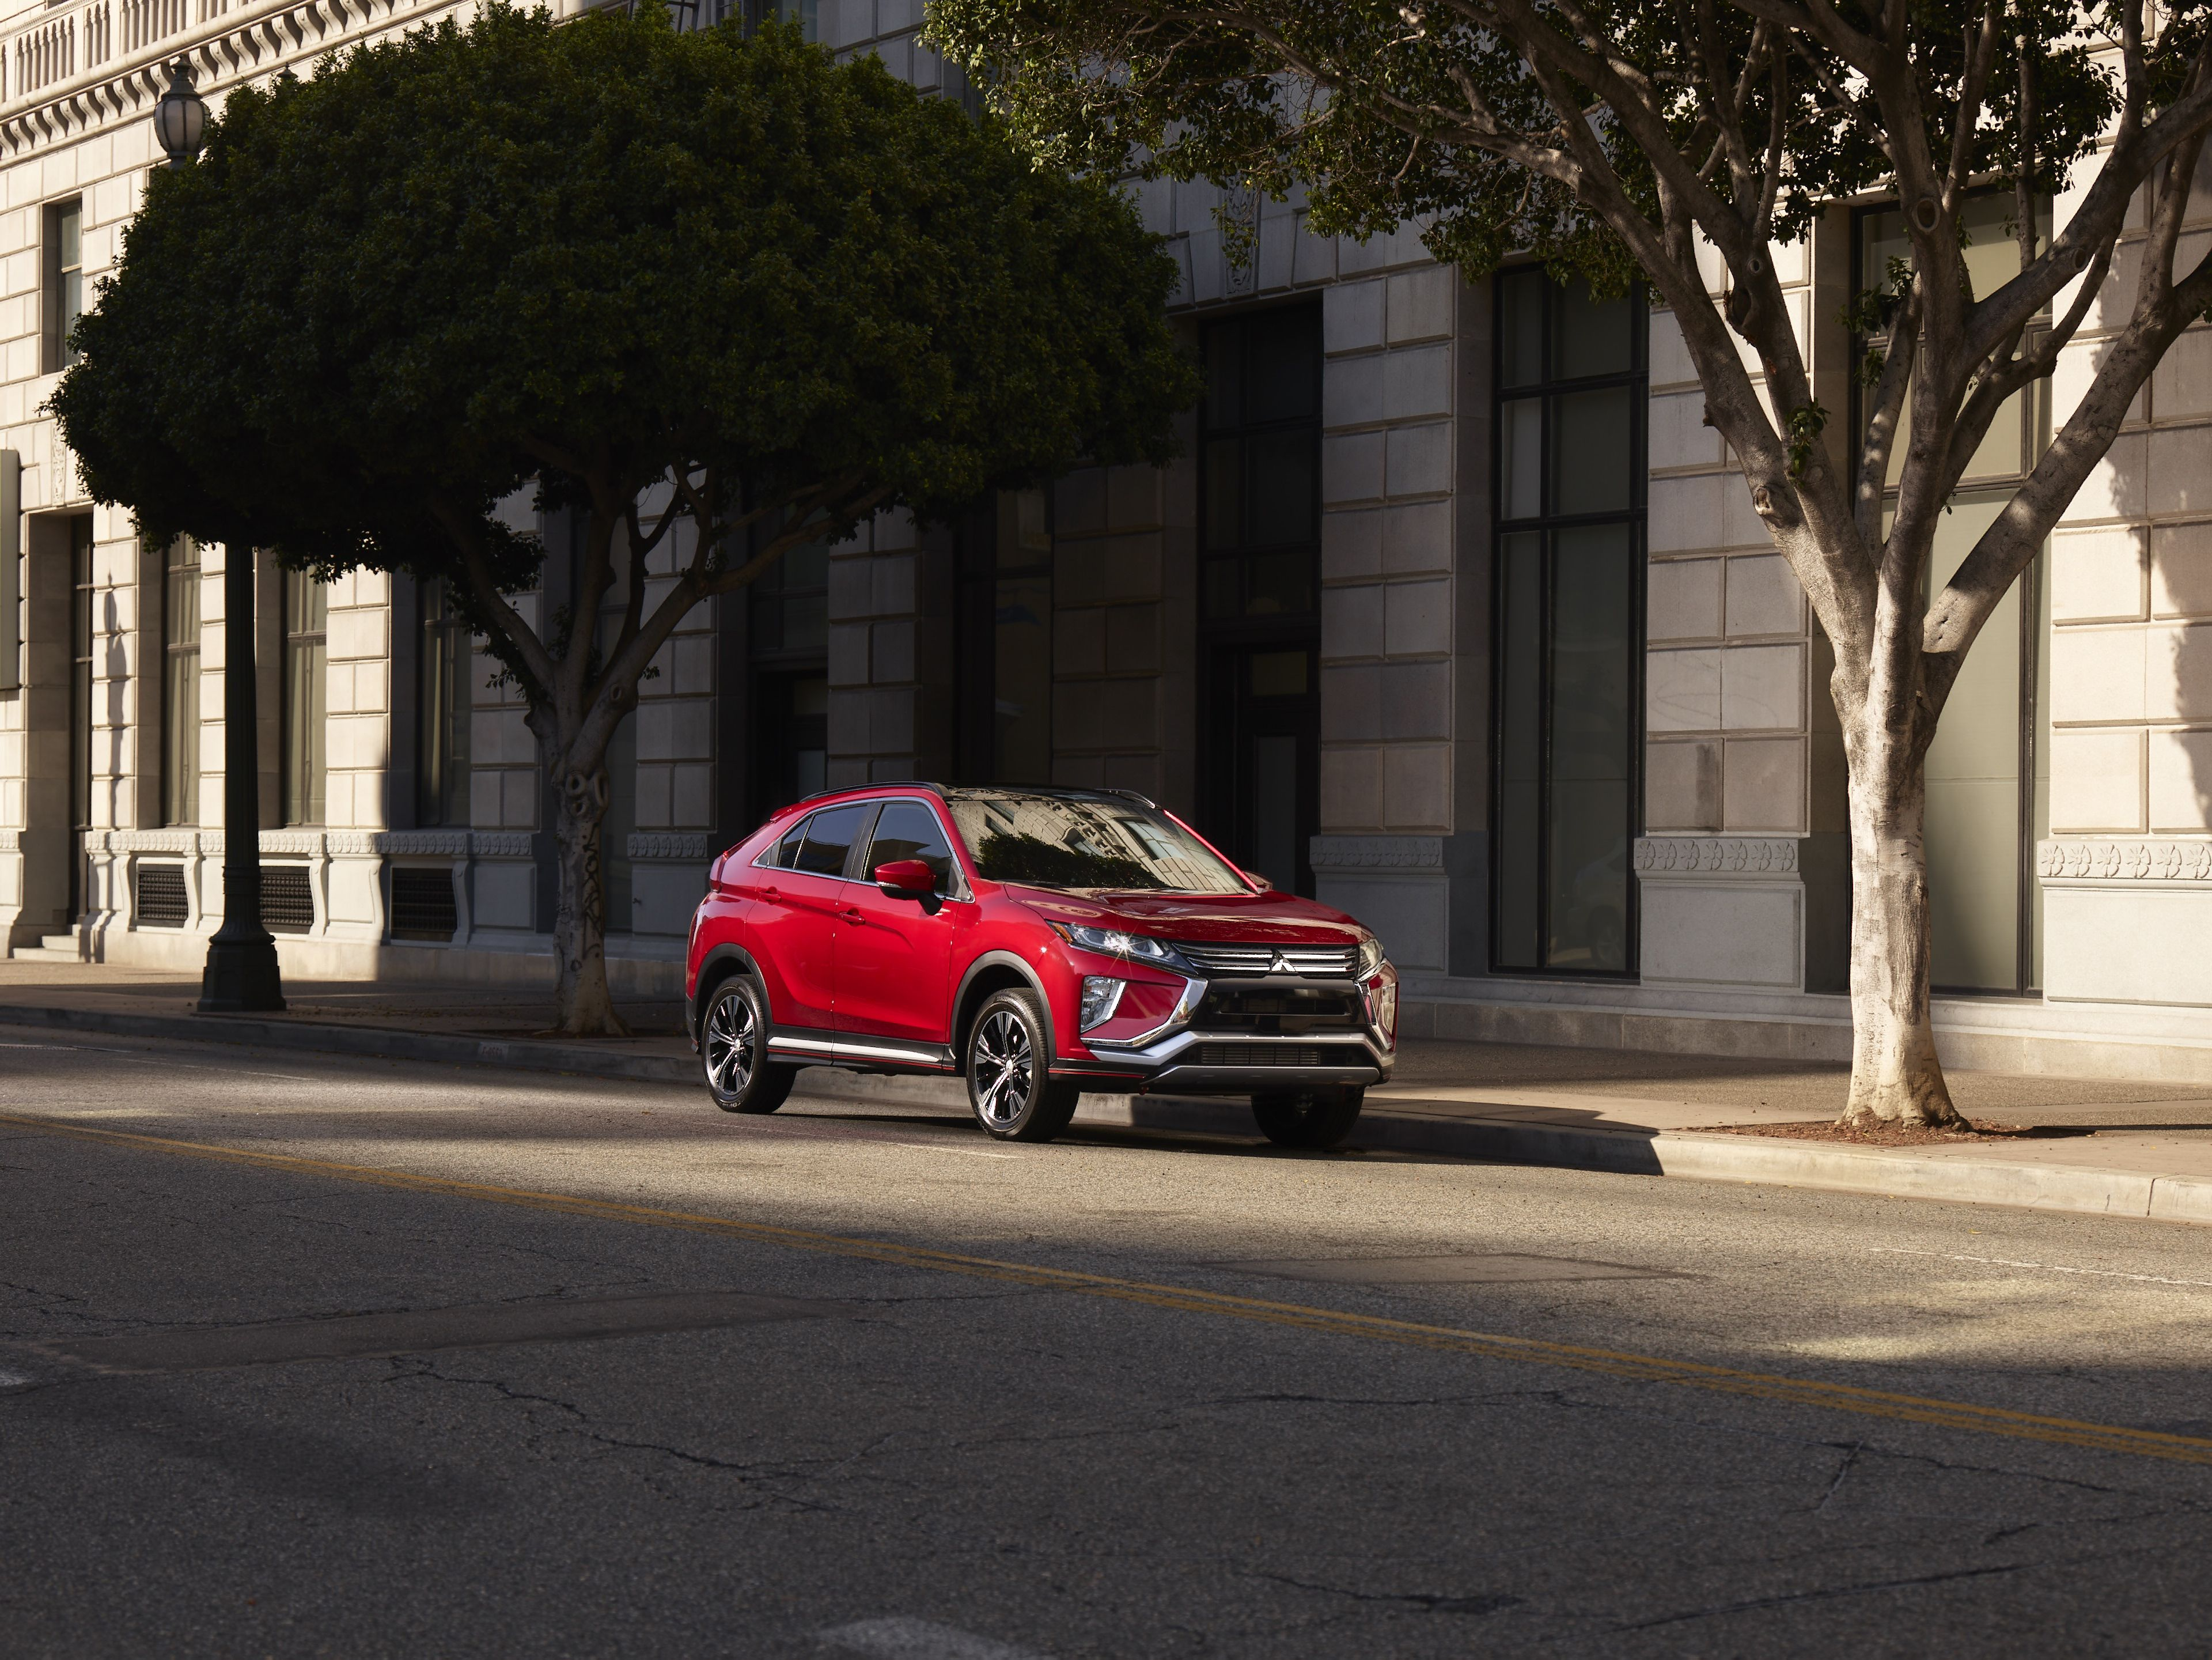 2020 Mitsubishi Outlander Sport Updated Styling And Infotainment System Release Price >> 2020 Mitsubishi Eclipse Cross Review Pricing And Specs